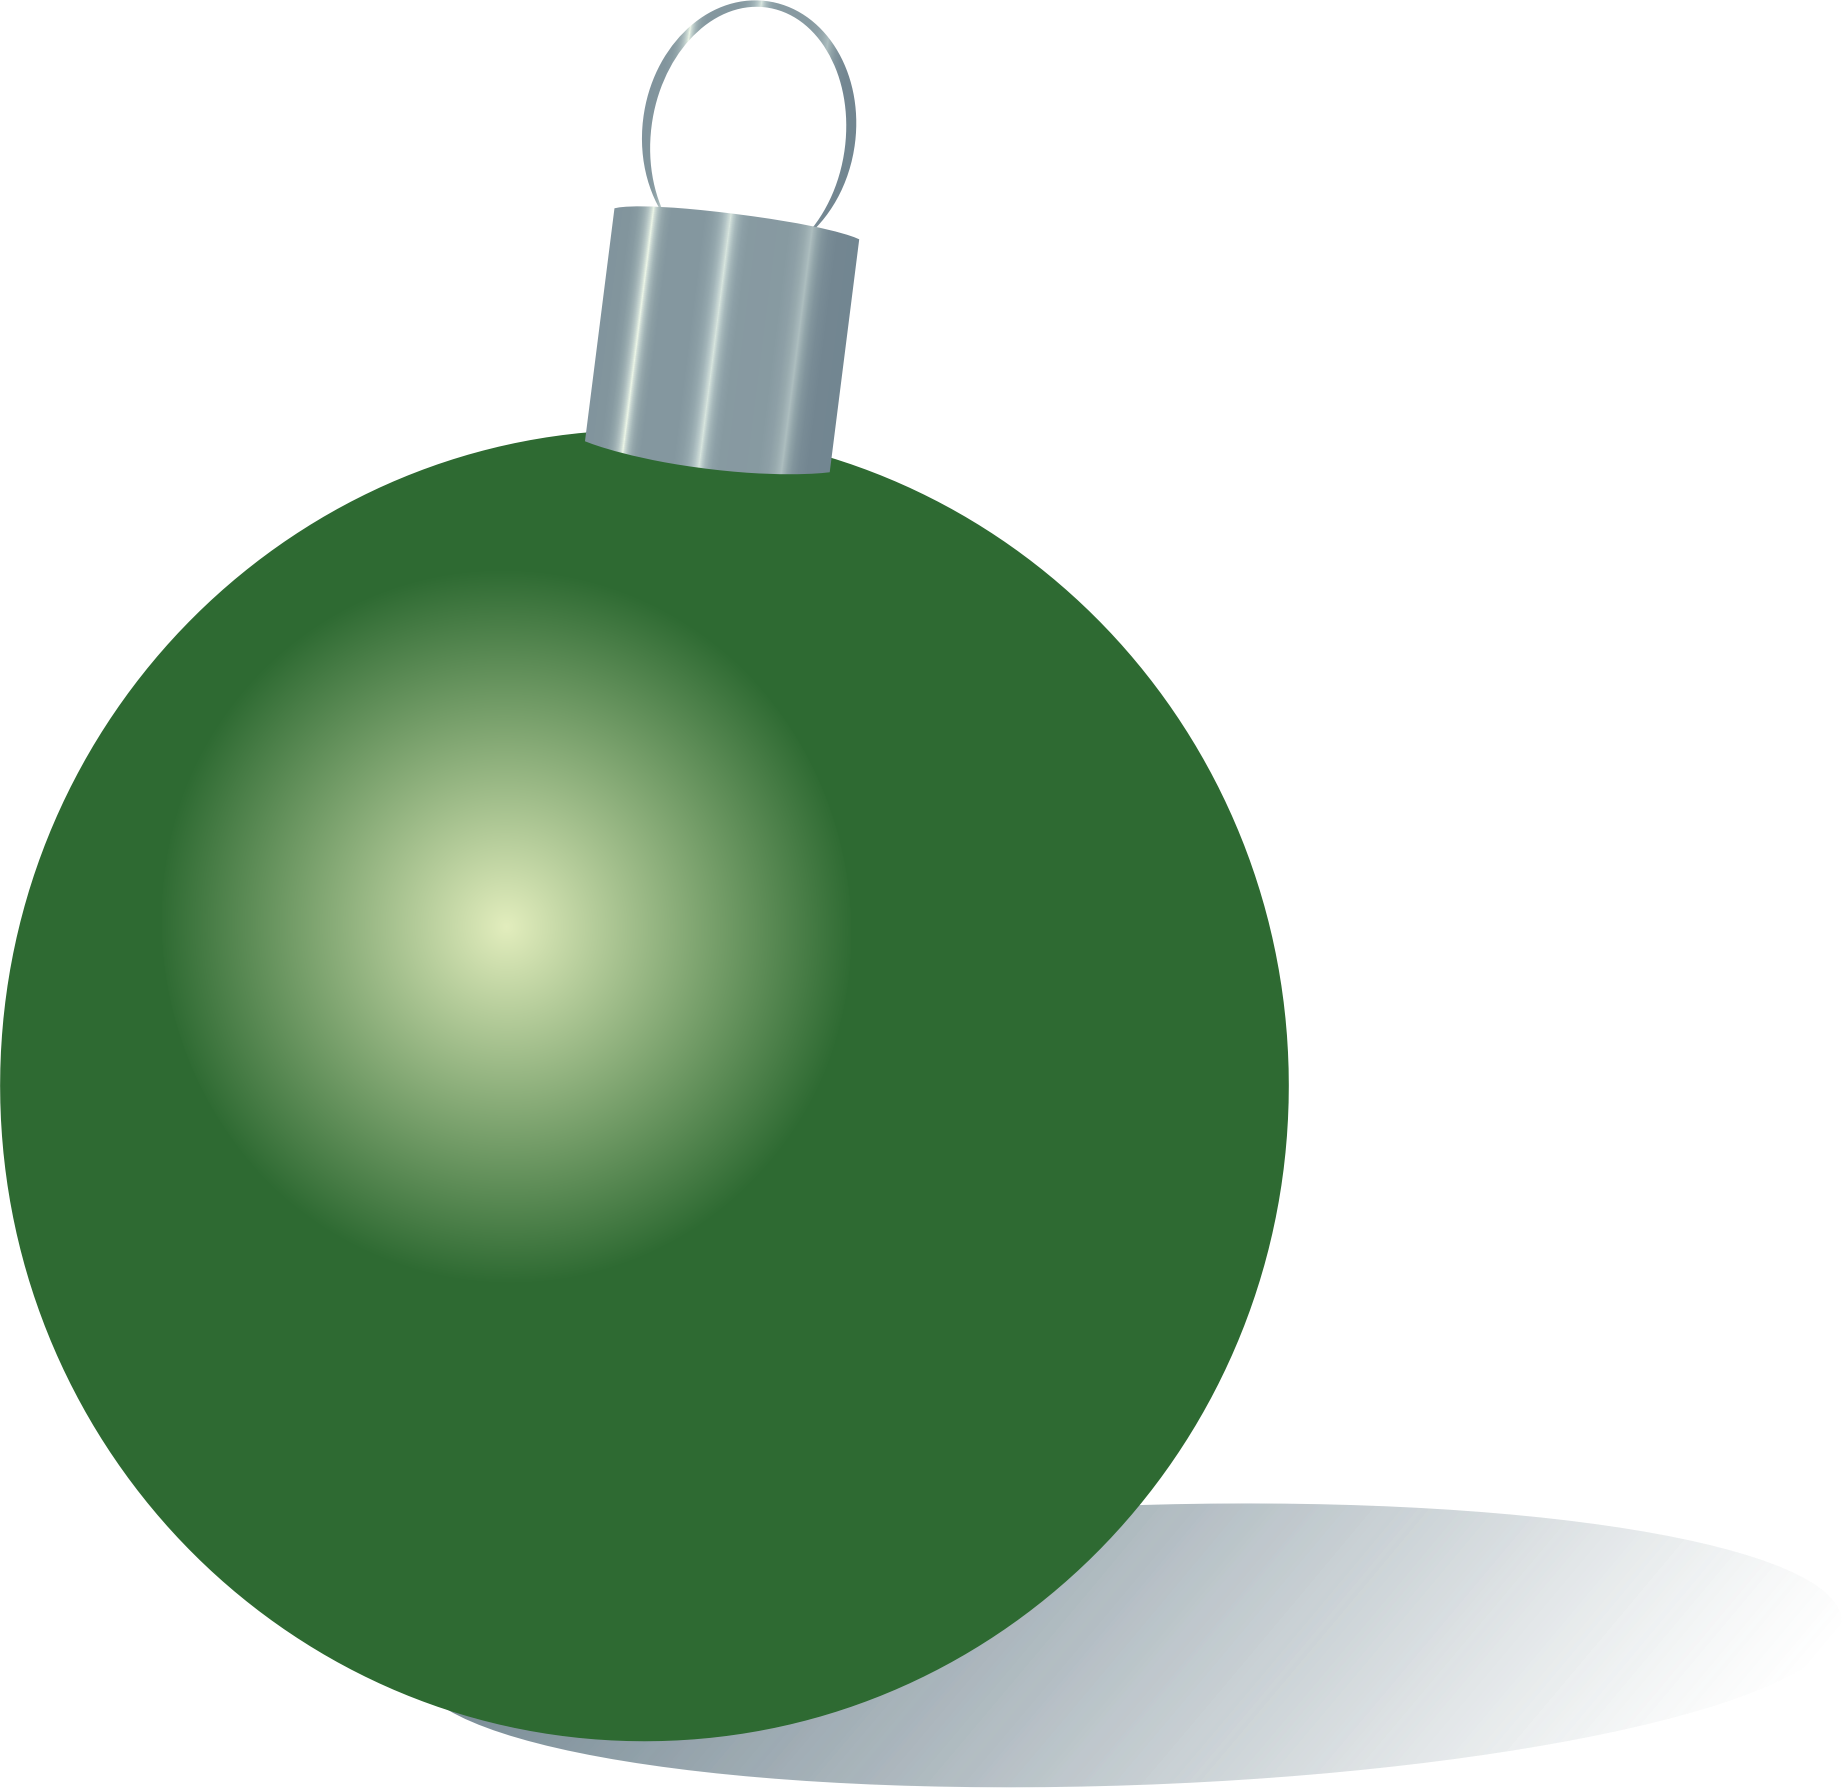 Green christmas ornaments clipart picture library stock Clipart - Green Christmas Ornament picture library stock